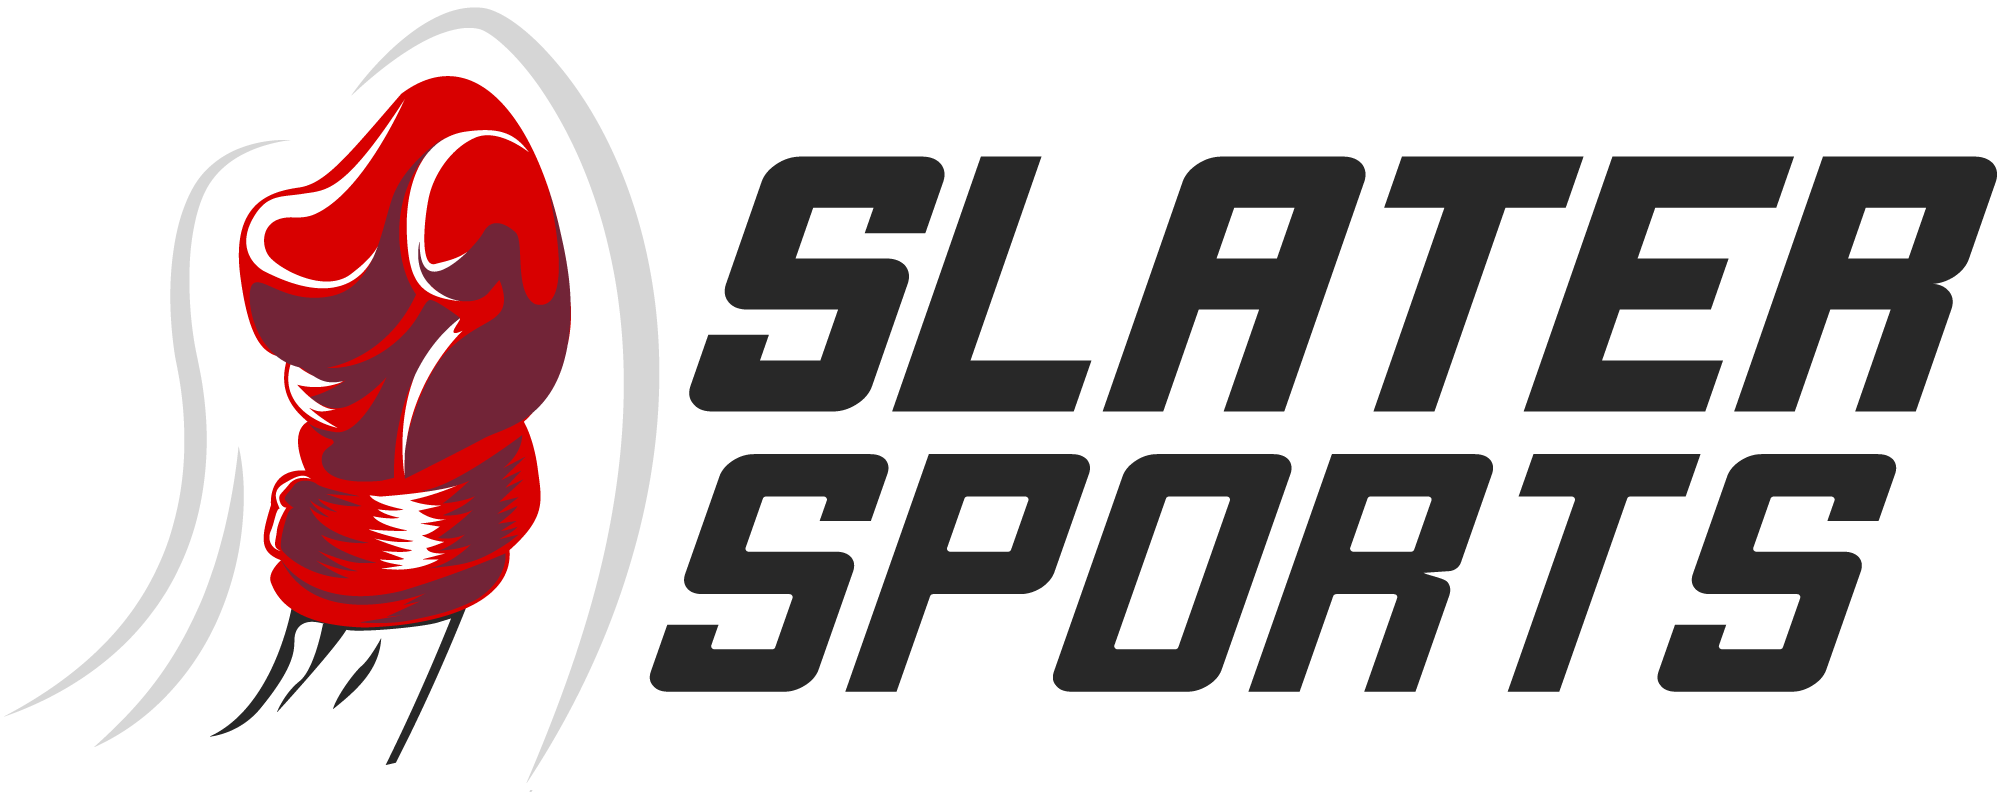 Read Slater Sports Reviews